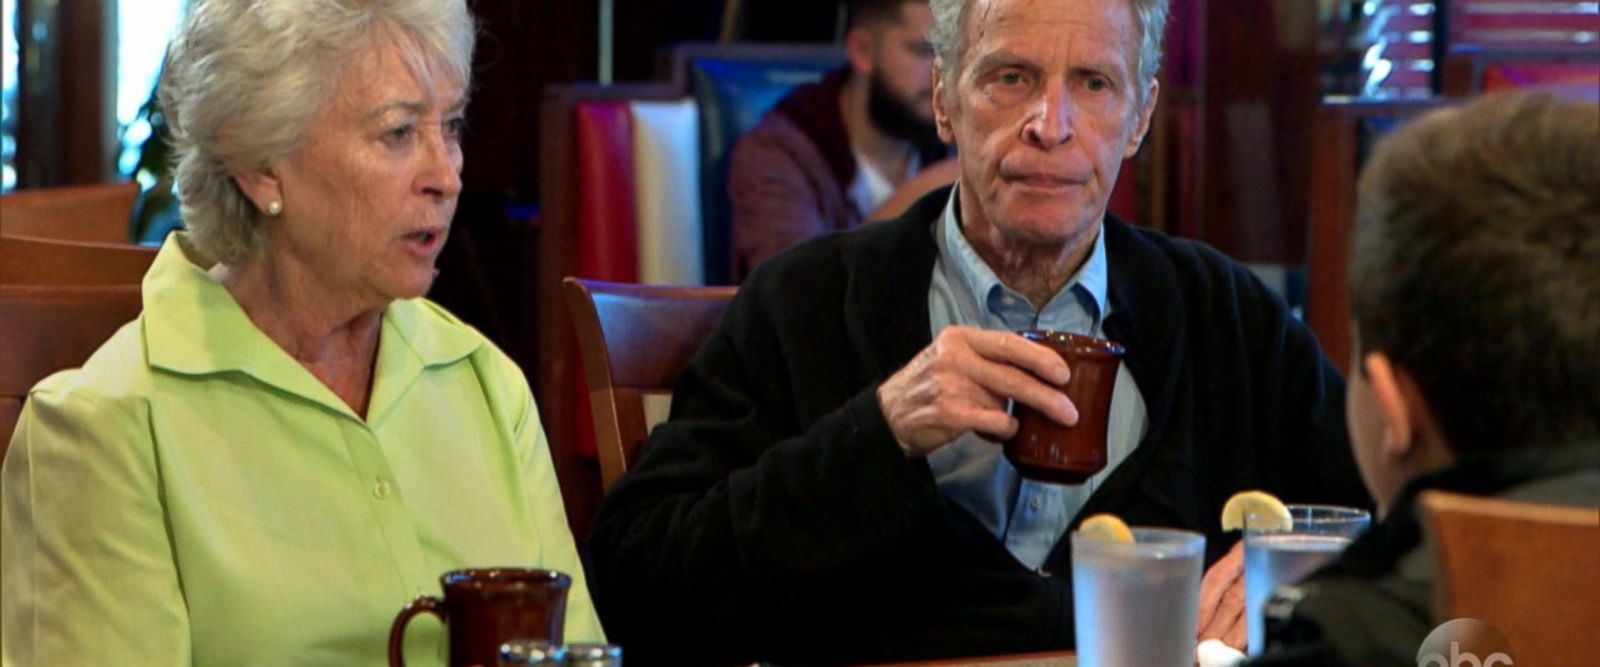 VIDEO: What Would You Do: Grandparents verbally abuse their grandchildren